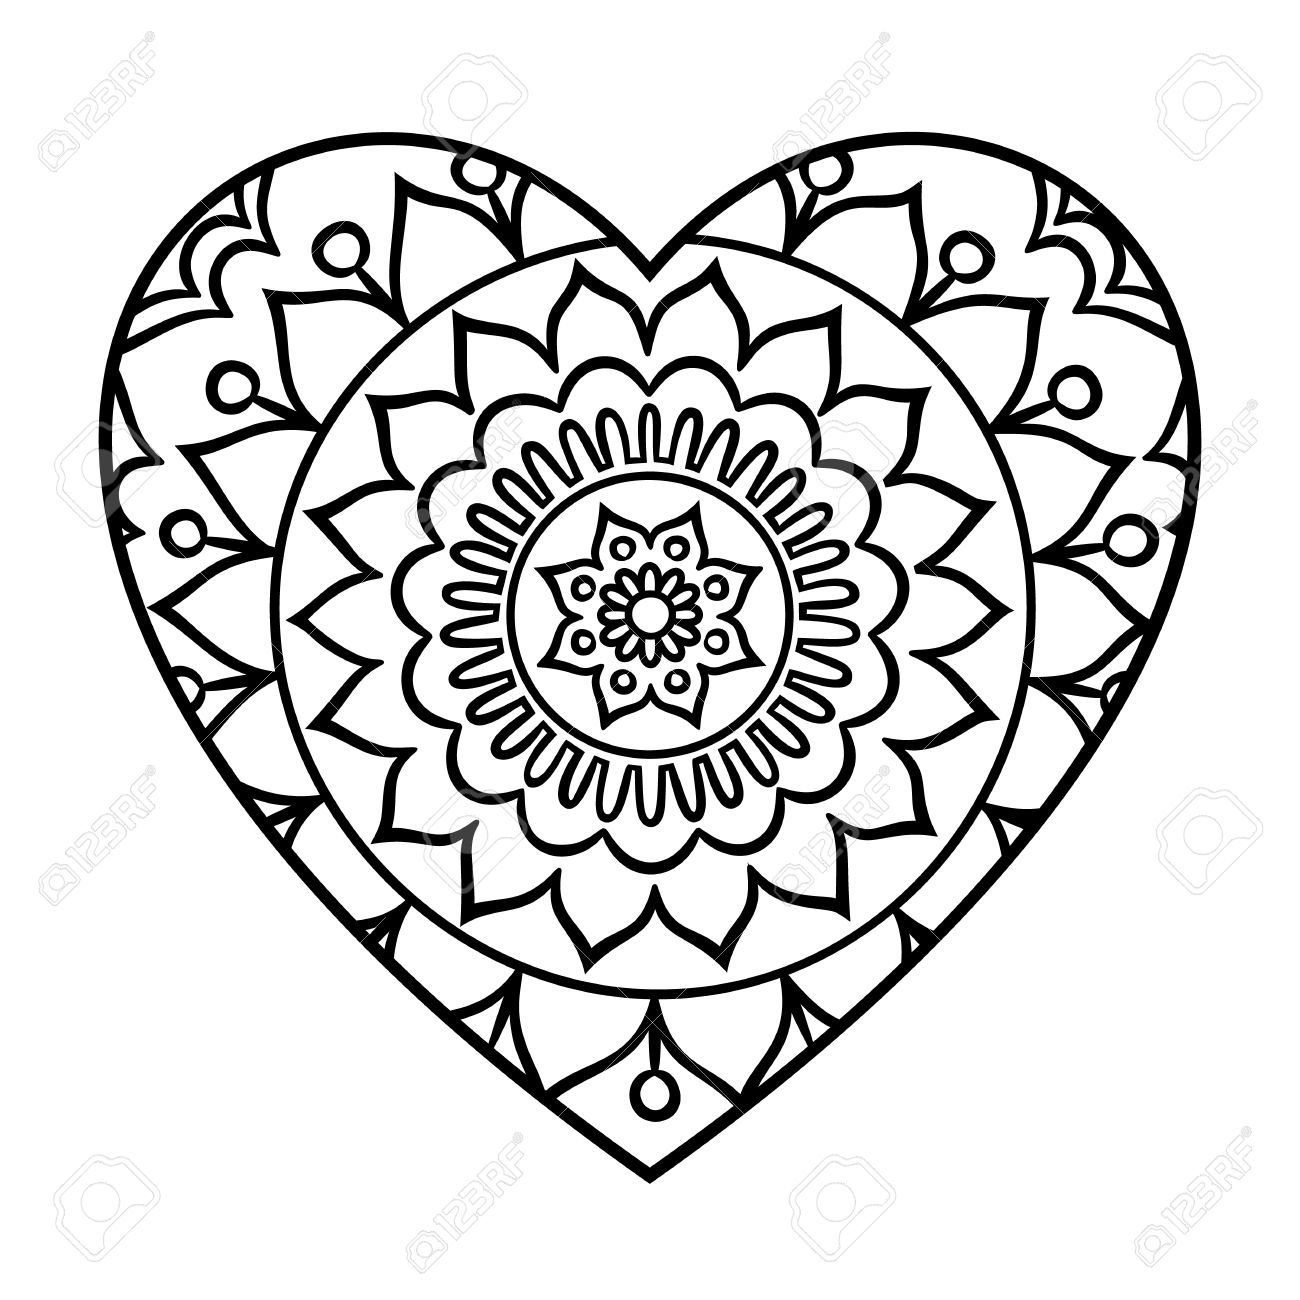 1300x1300 Incredible Doodle Heart Mandala Coloring Page Outline Floral